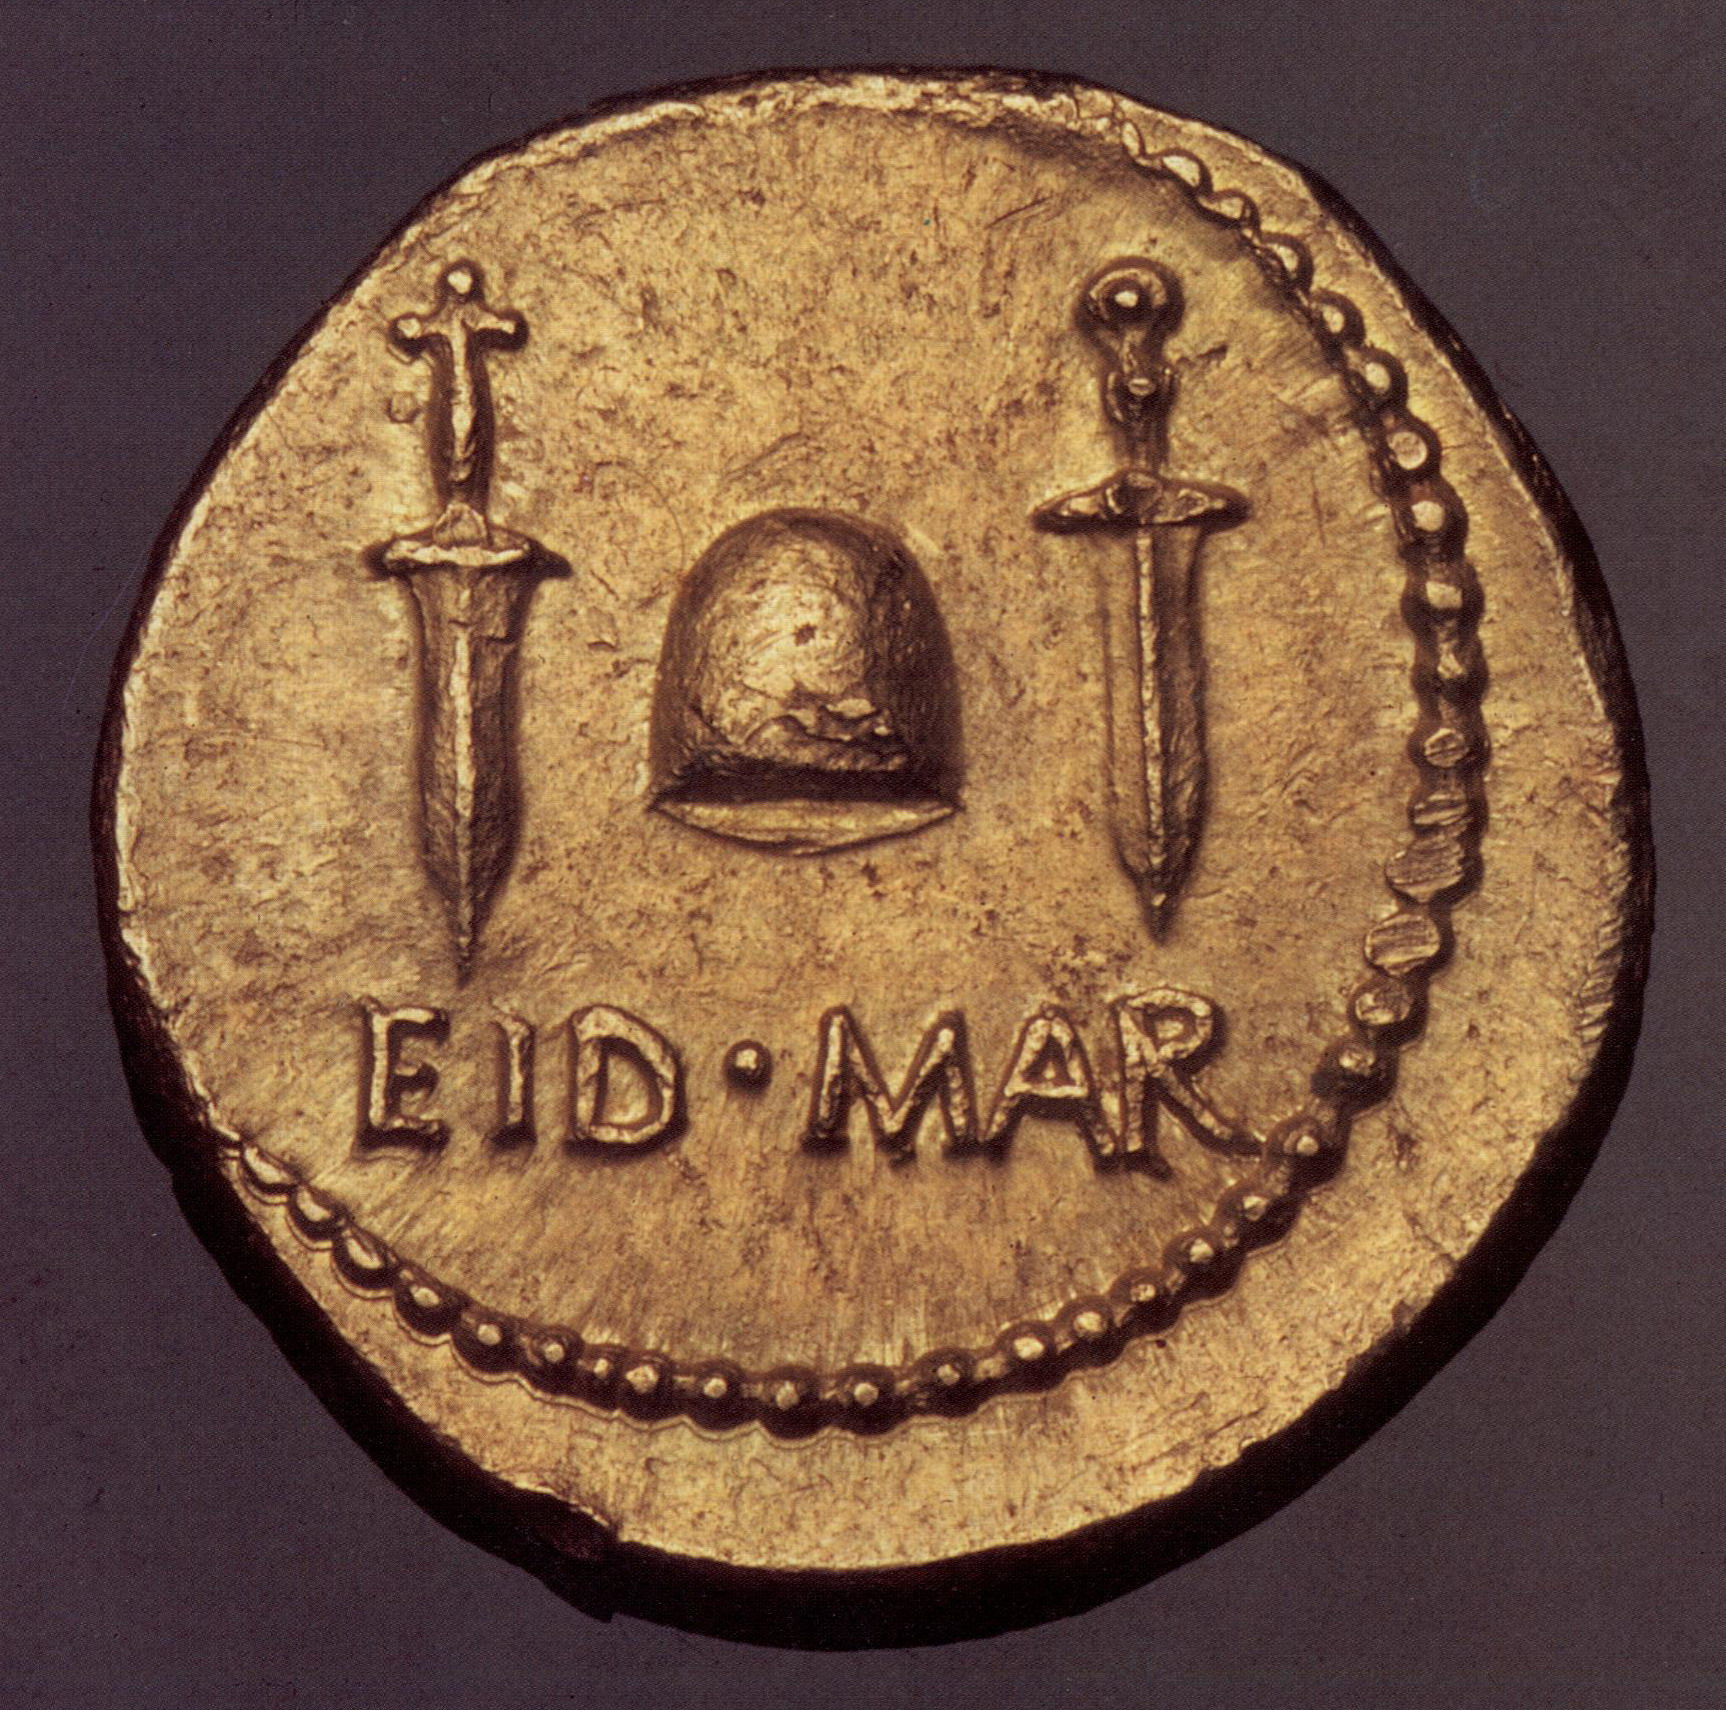 Ides_of_March_Coin_Back